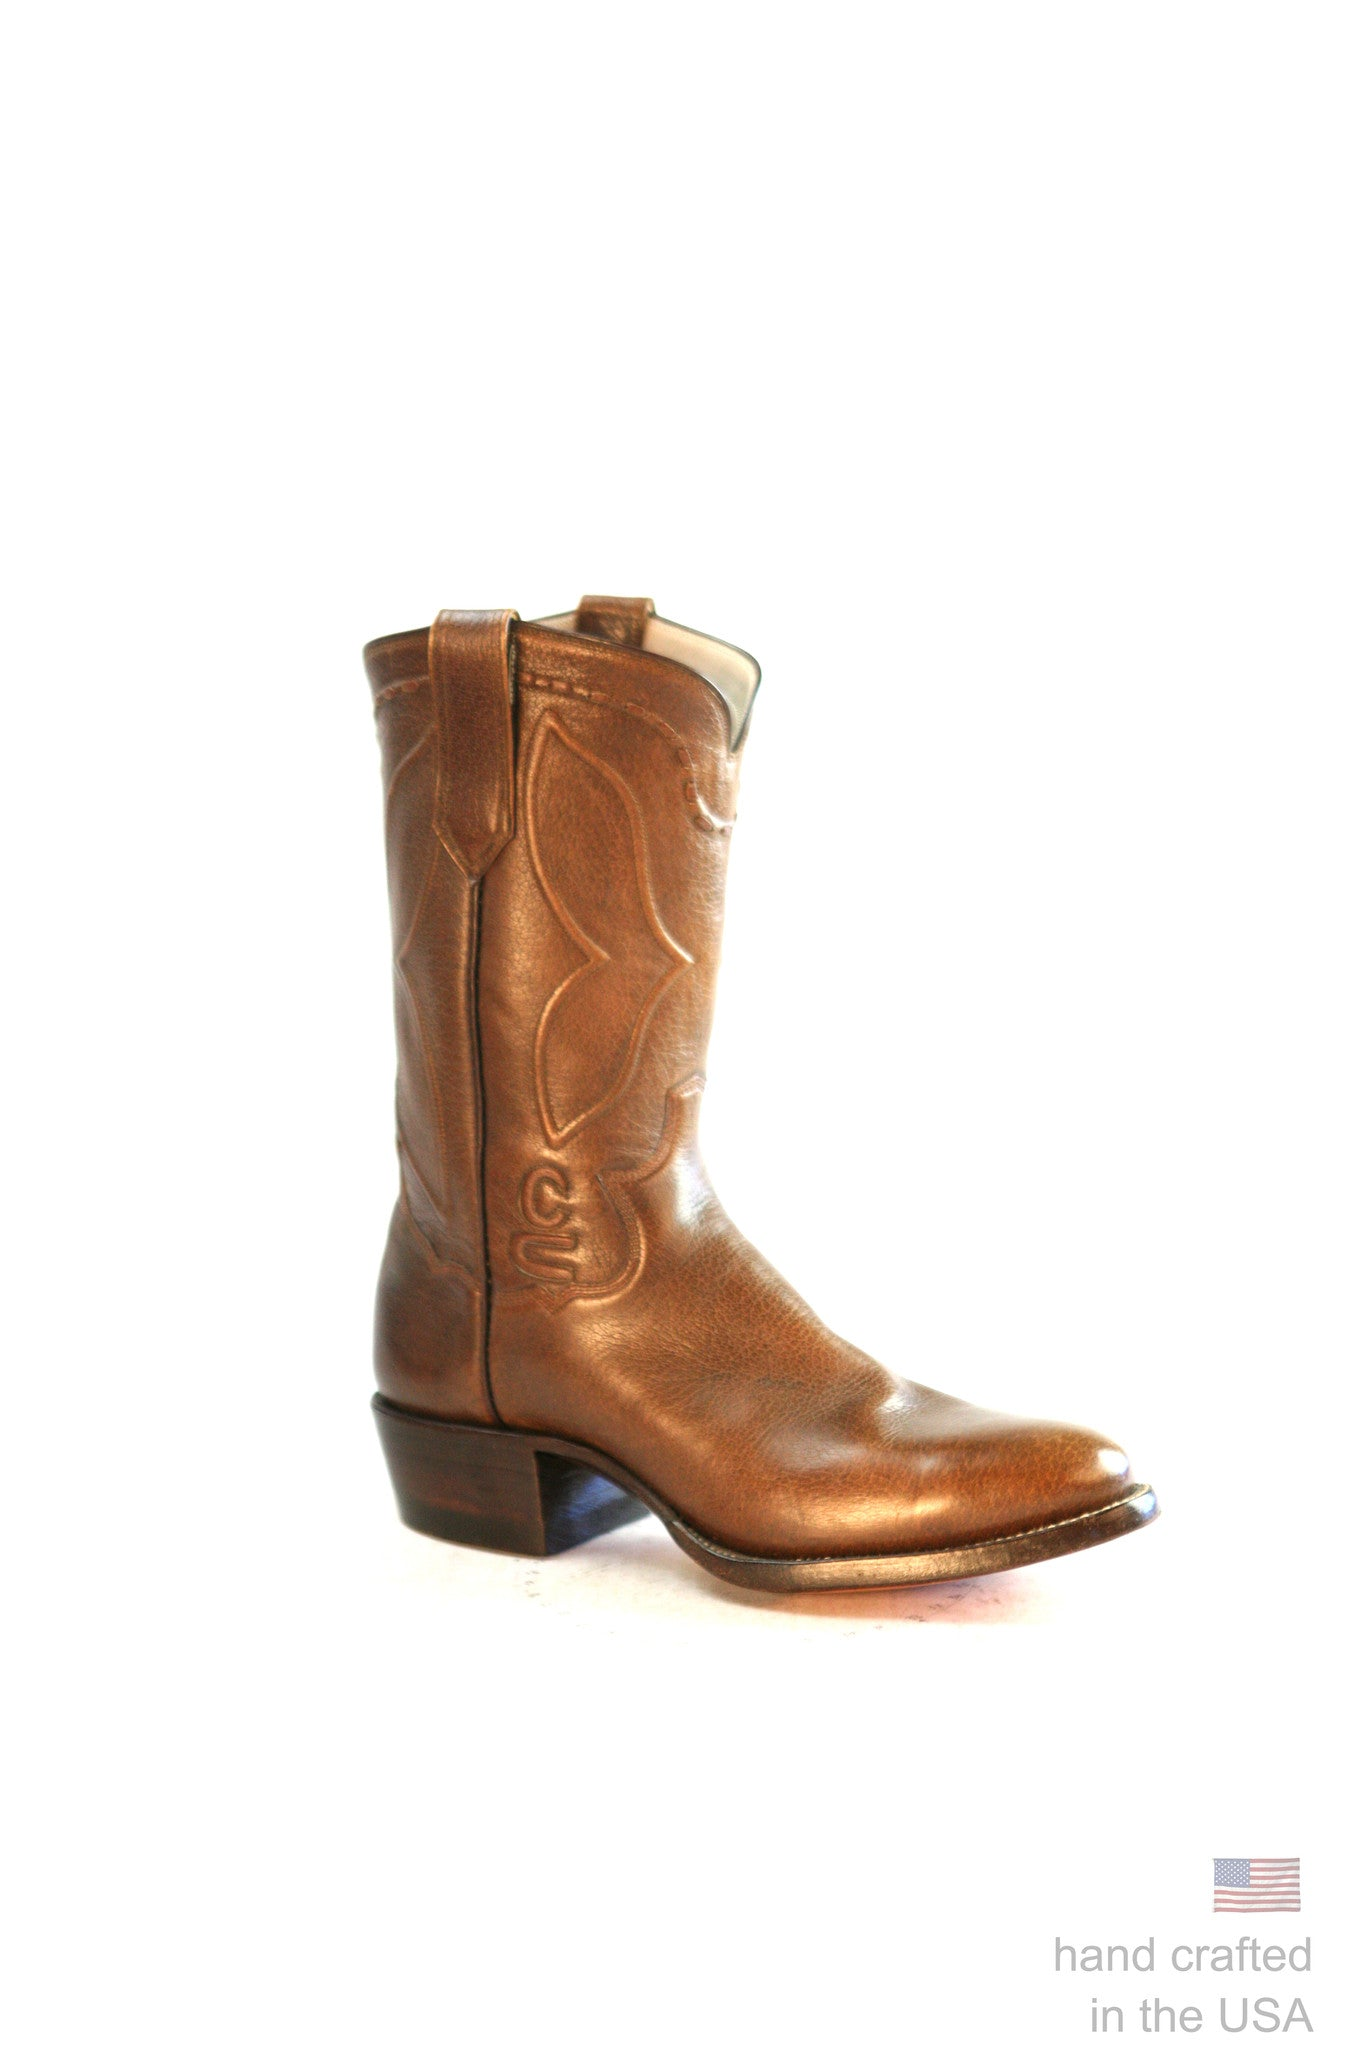 Singles: Boot 0199: Size 11 A